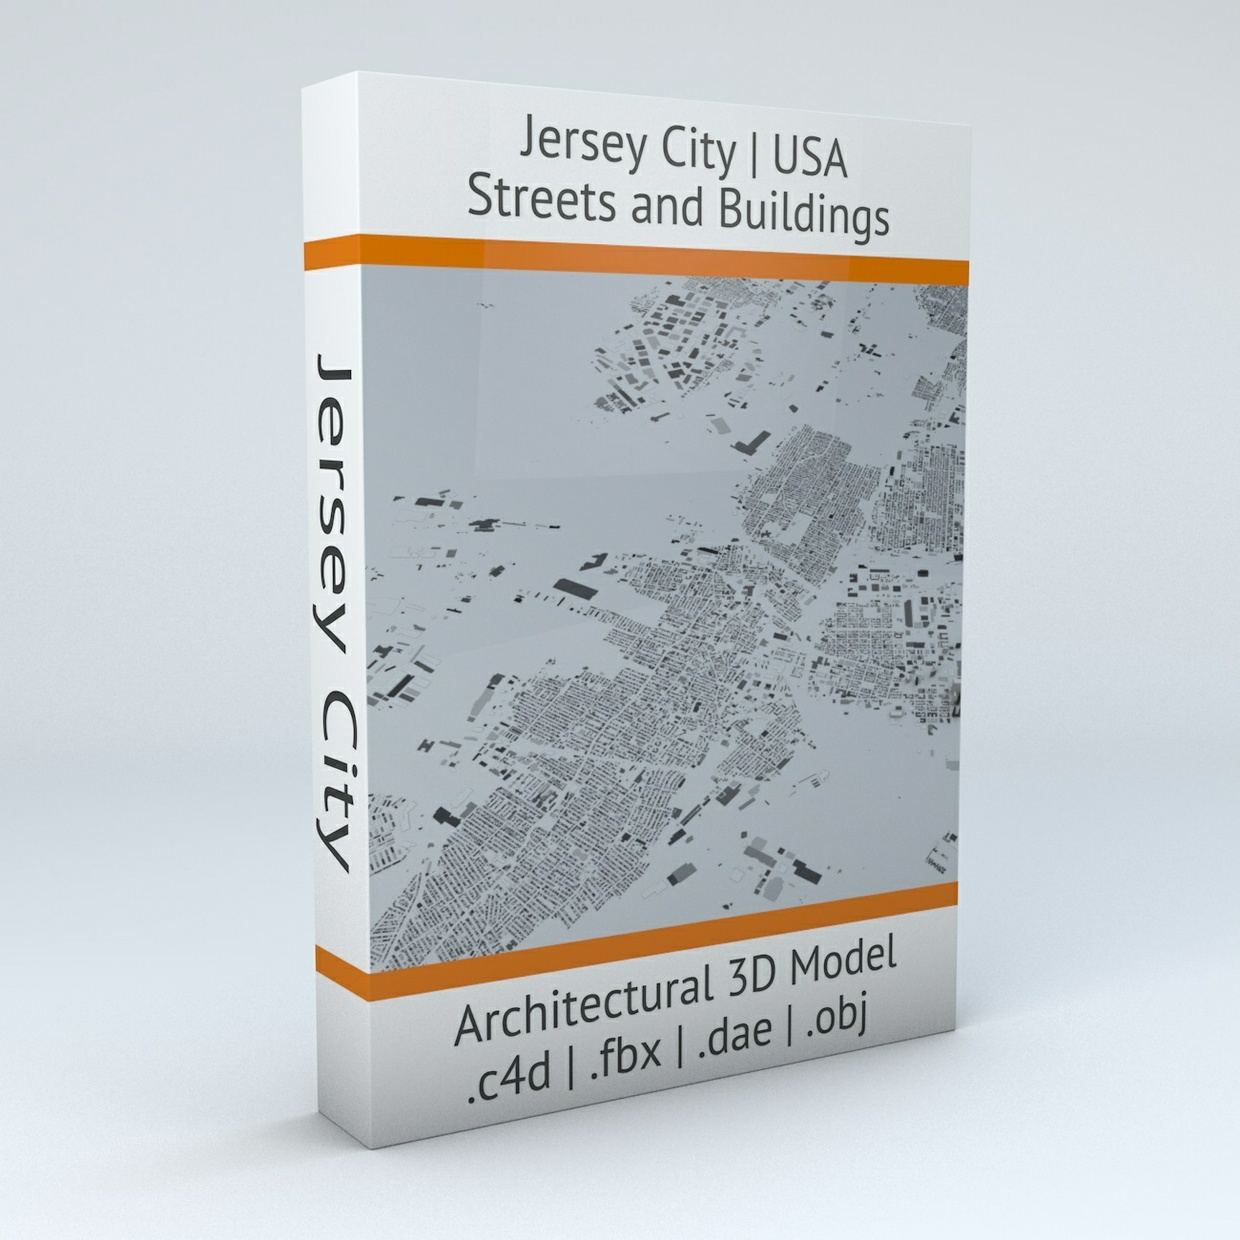 Jersey City Streets and Buildings Architectural 3D Model